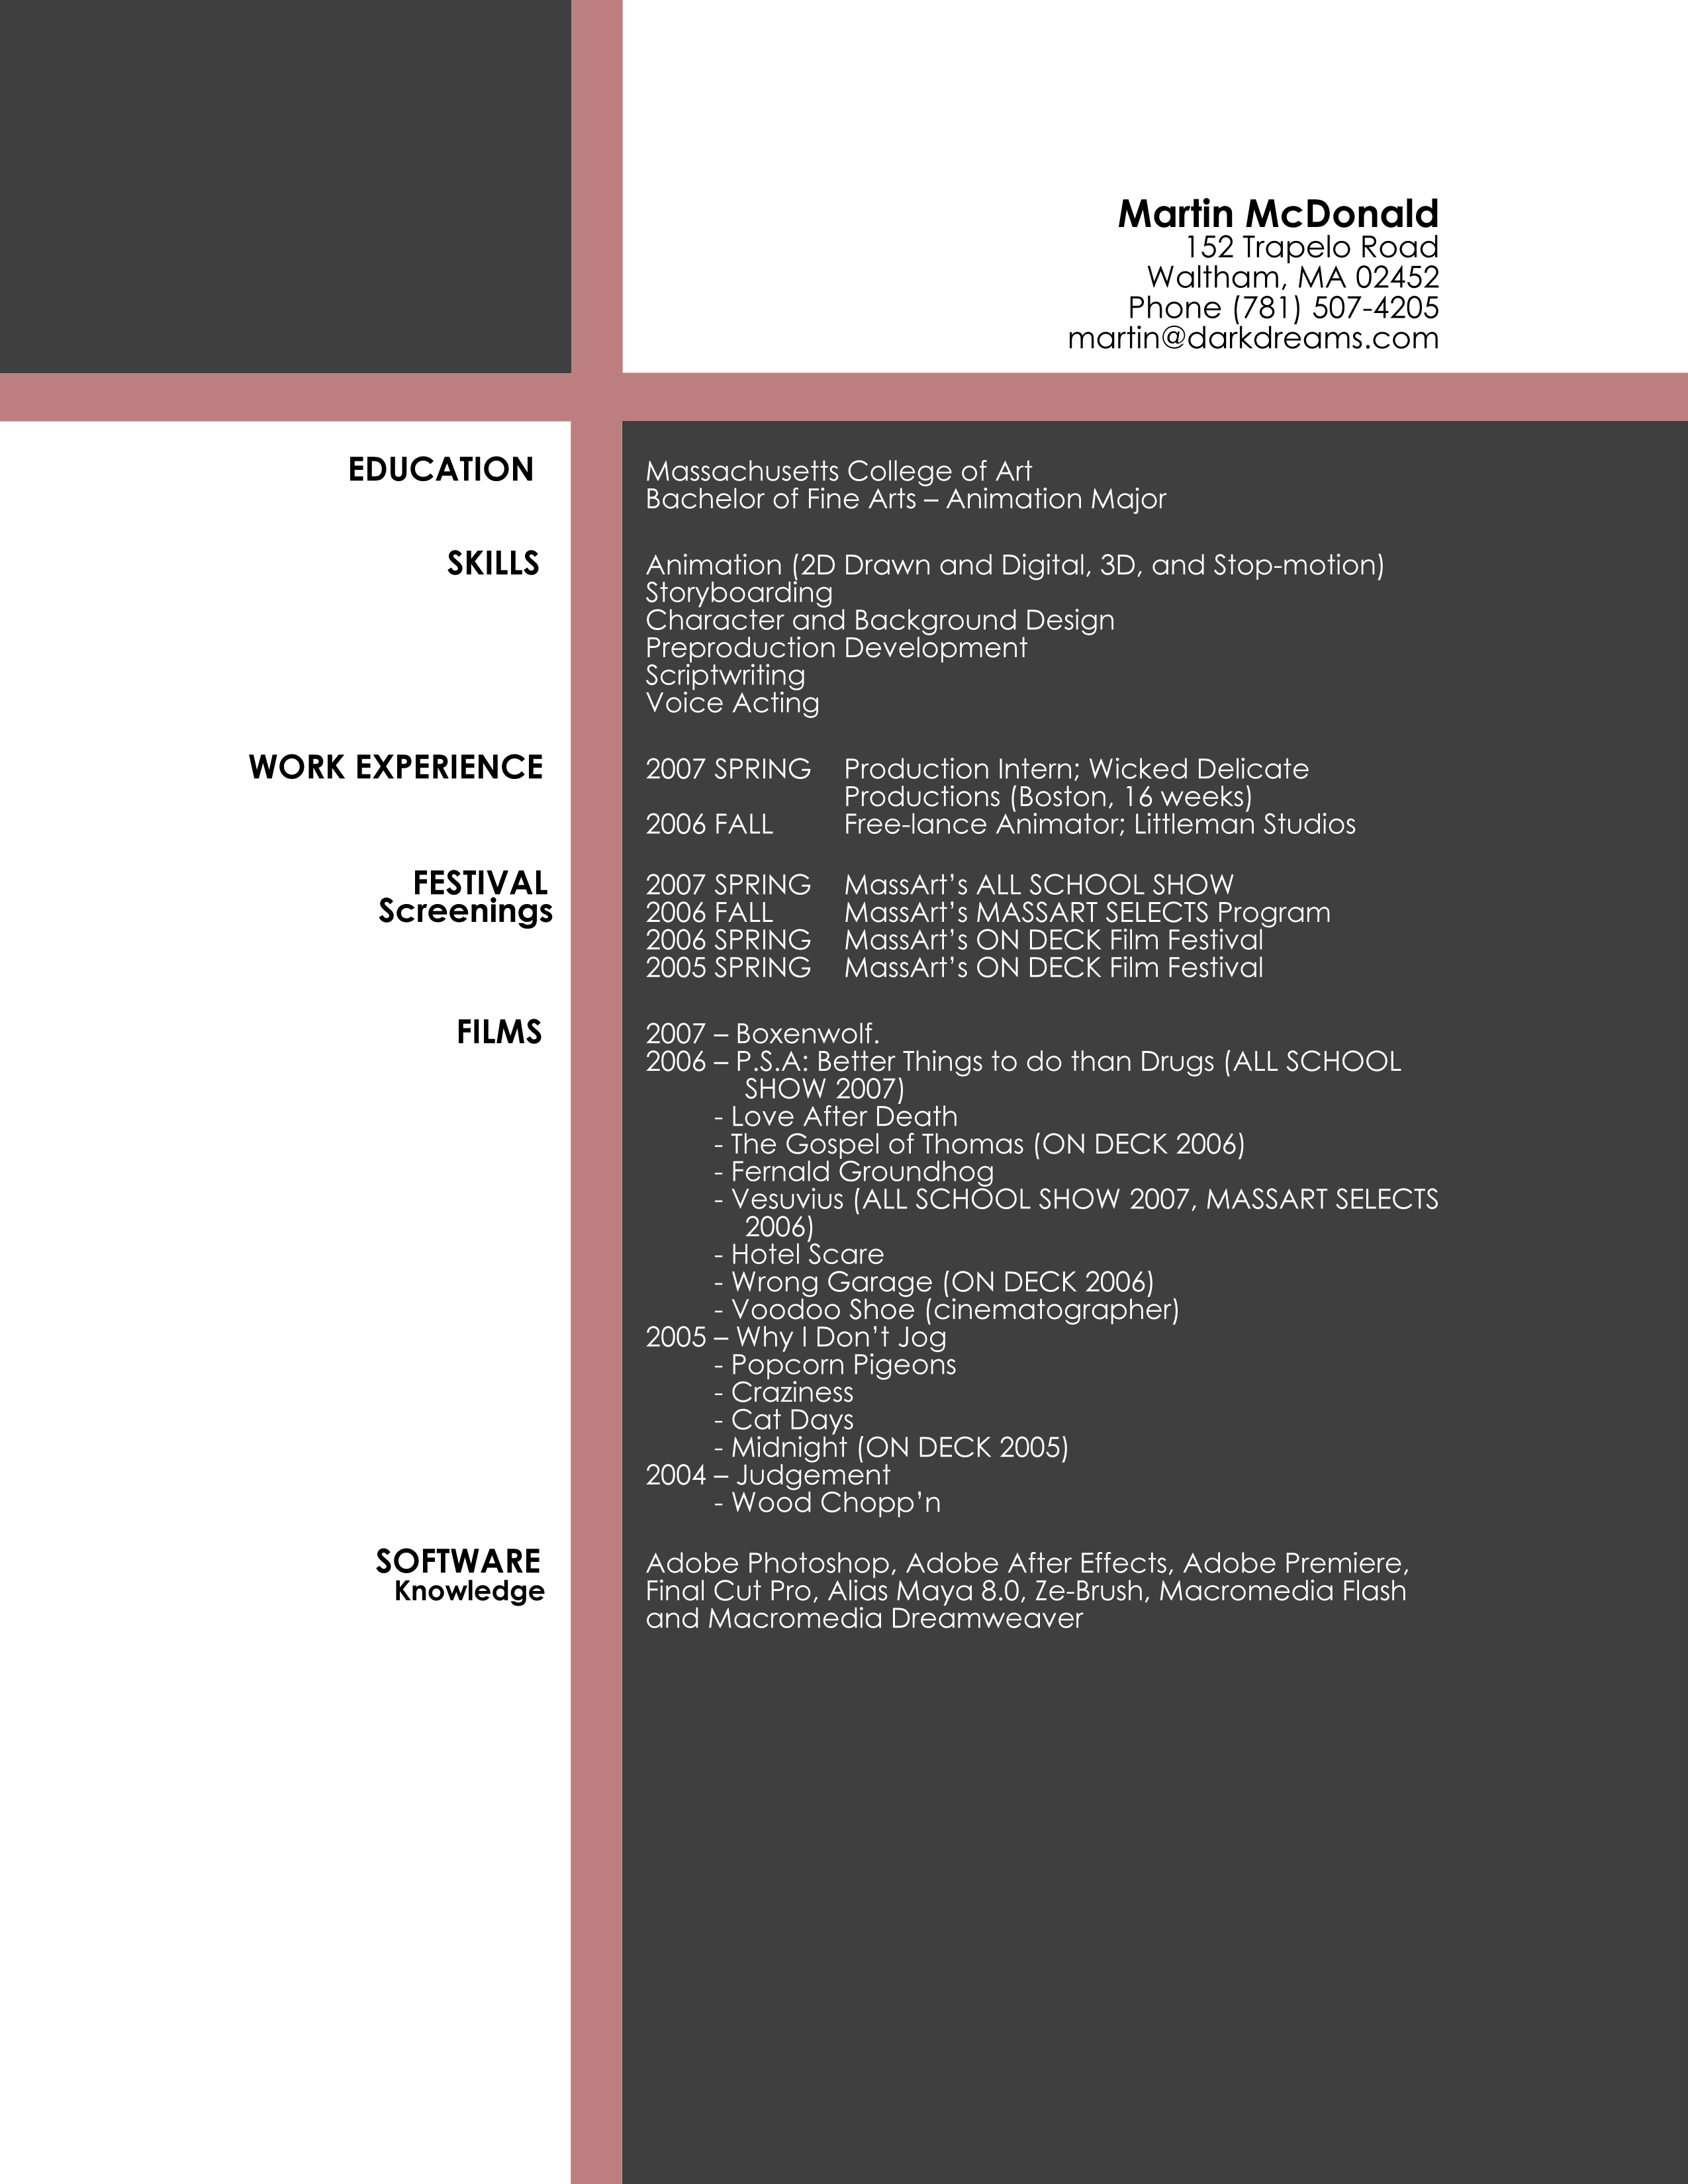 d artist resume template Alternative ways of